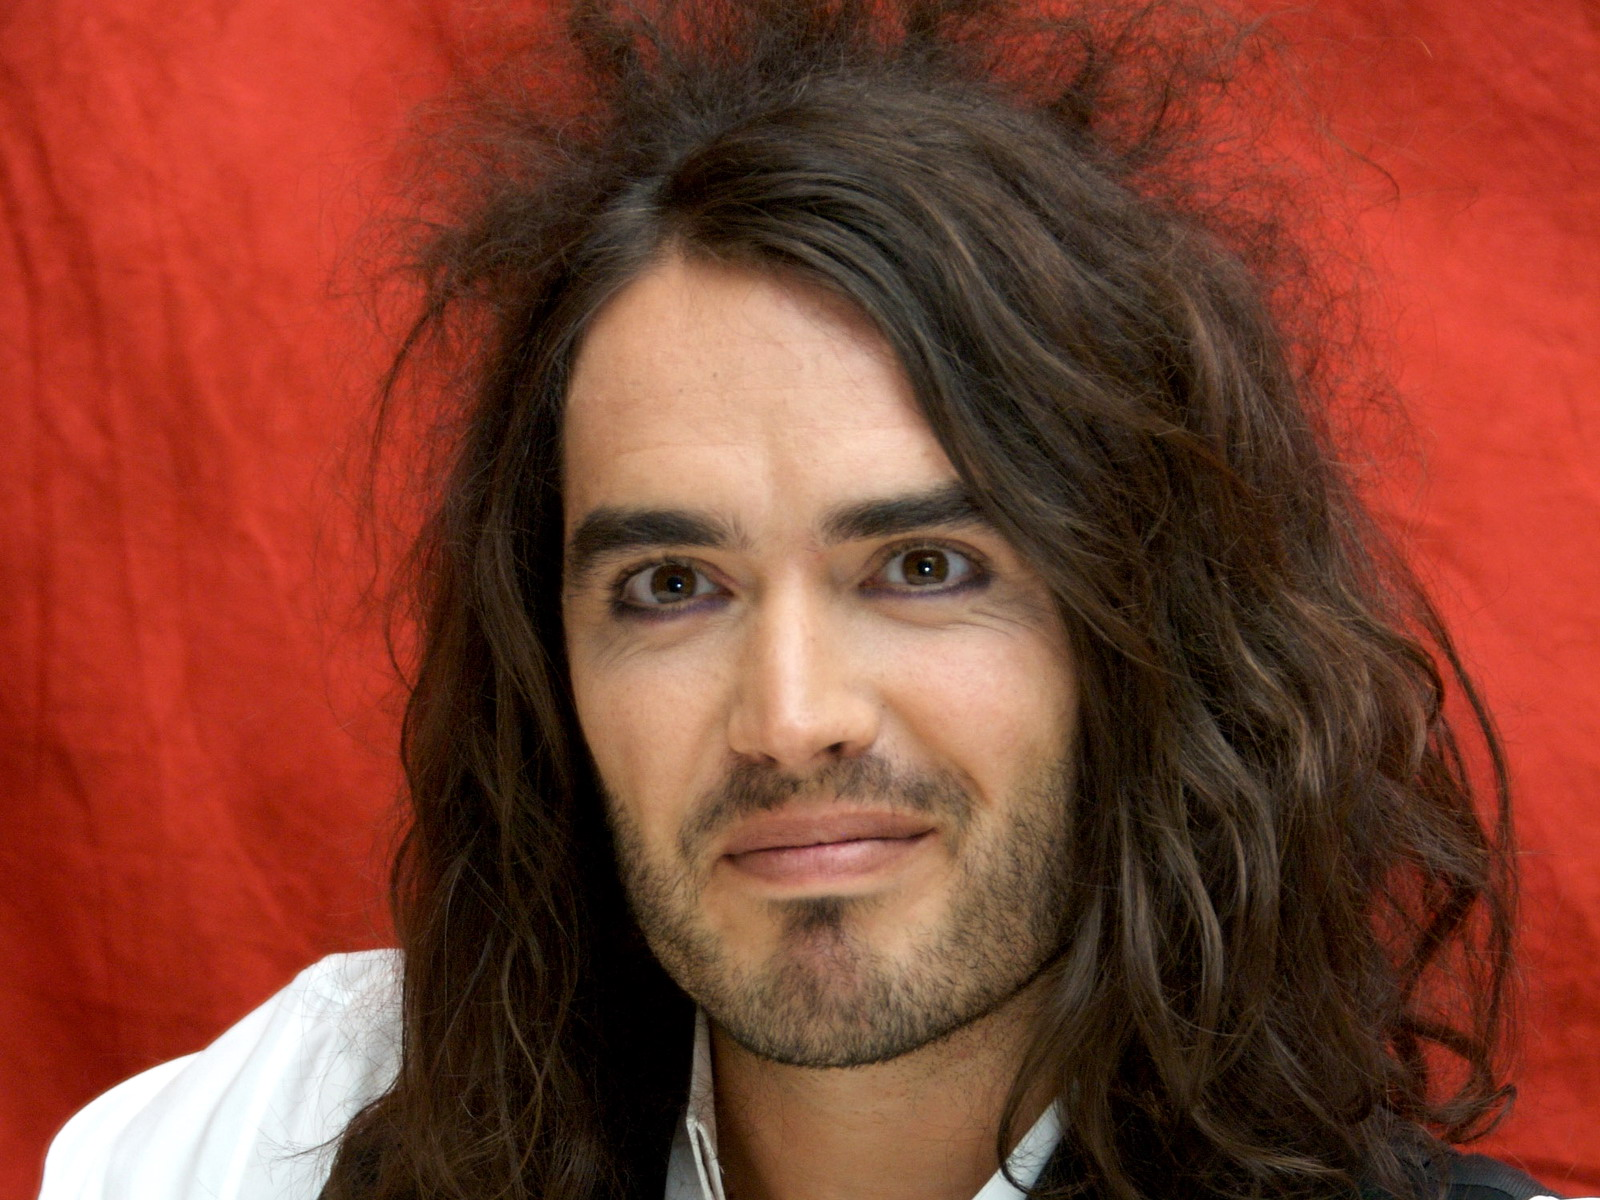 russell brand wallpaper 02. Celebrities Wallpaper